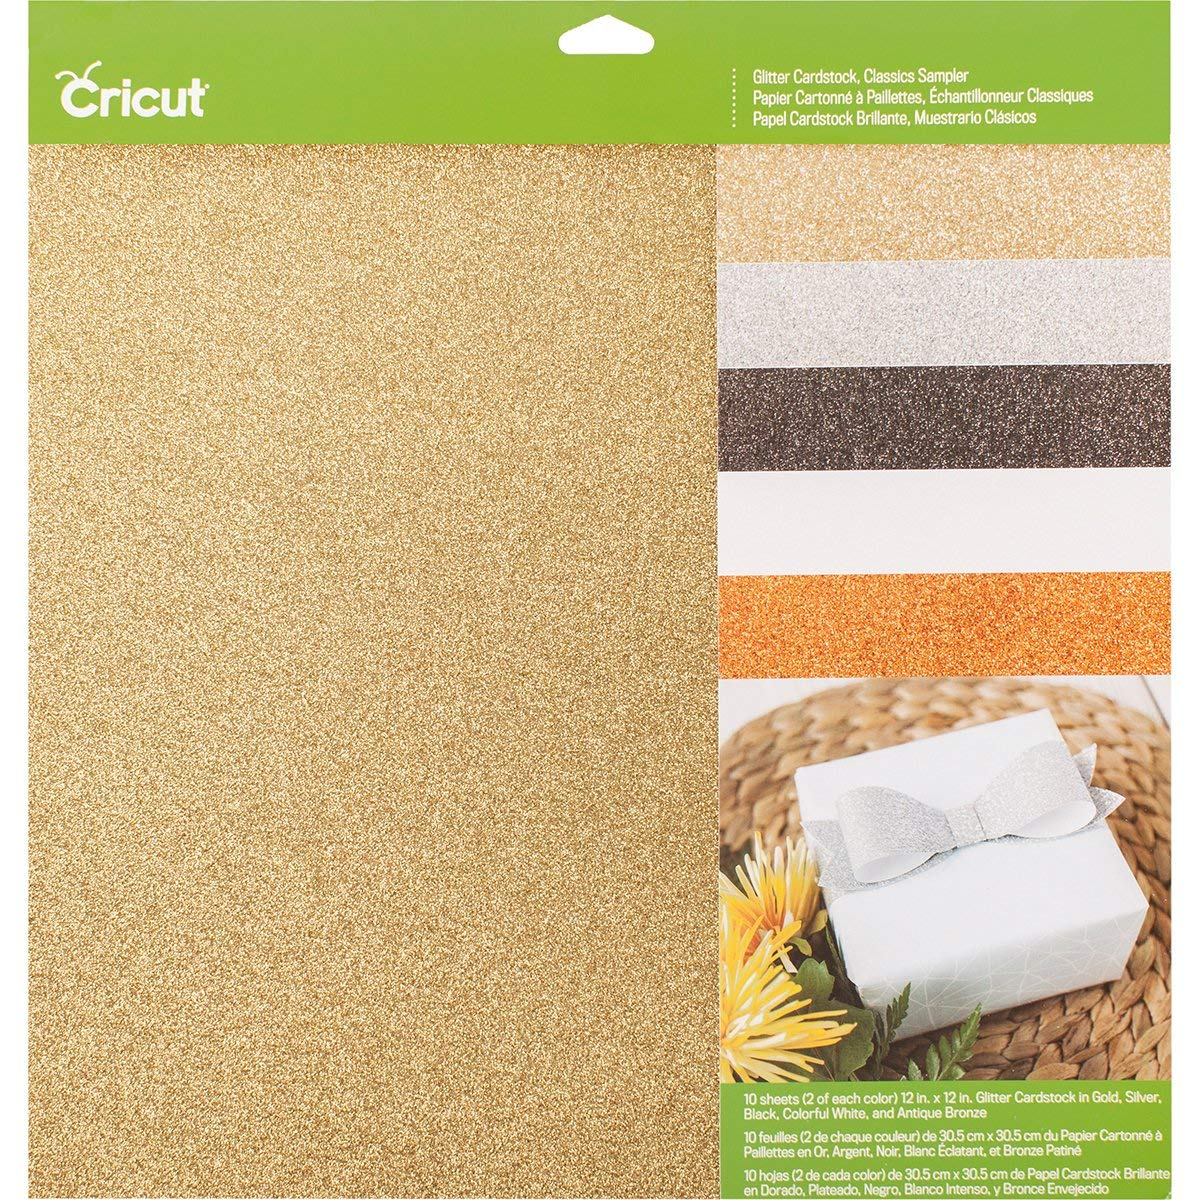 "Adhesive Sheets, 12"" x 12"", Assorted, Provo Craft-Cricut Glitter Cardstock Sampler: Classics By Cricut"